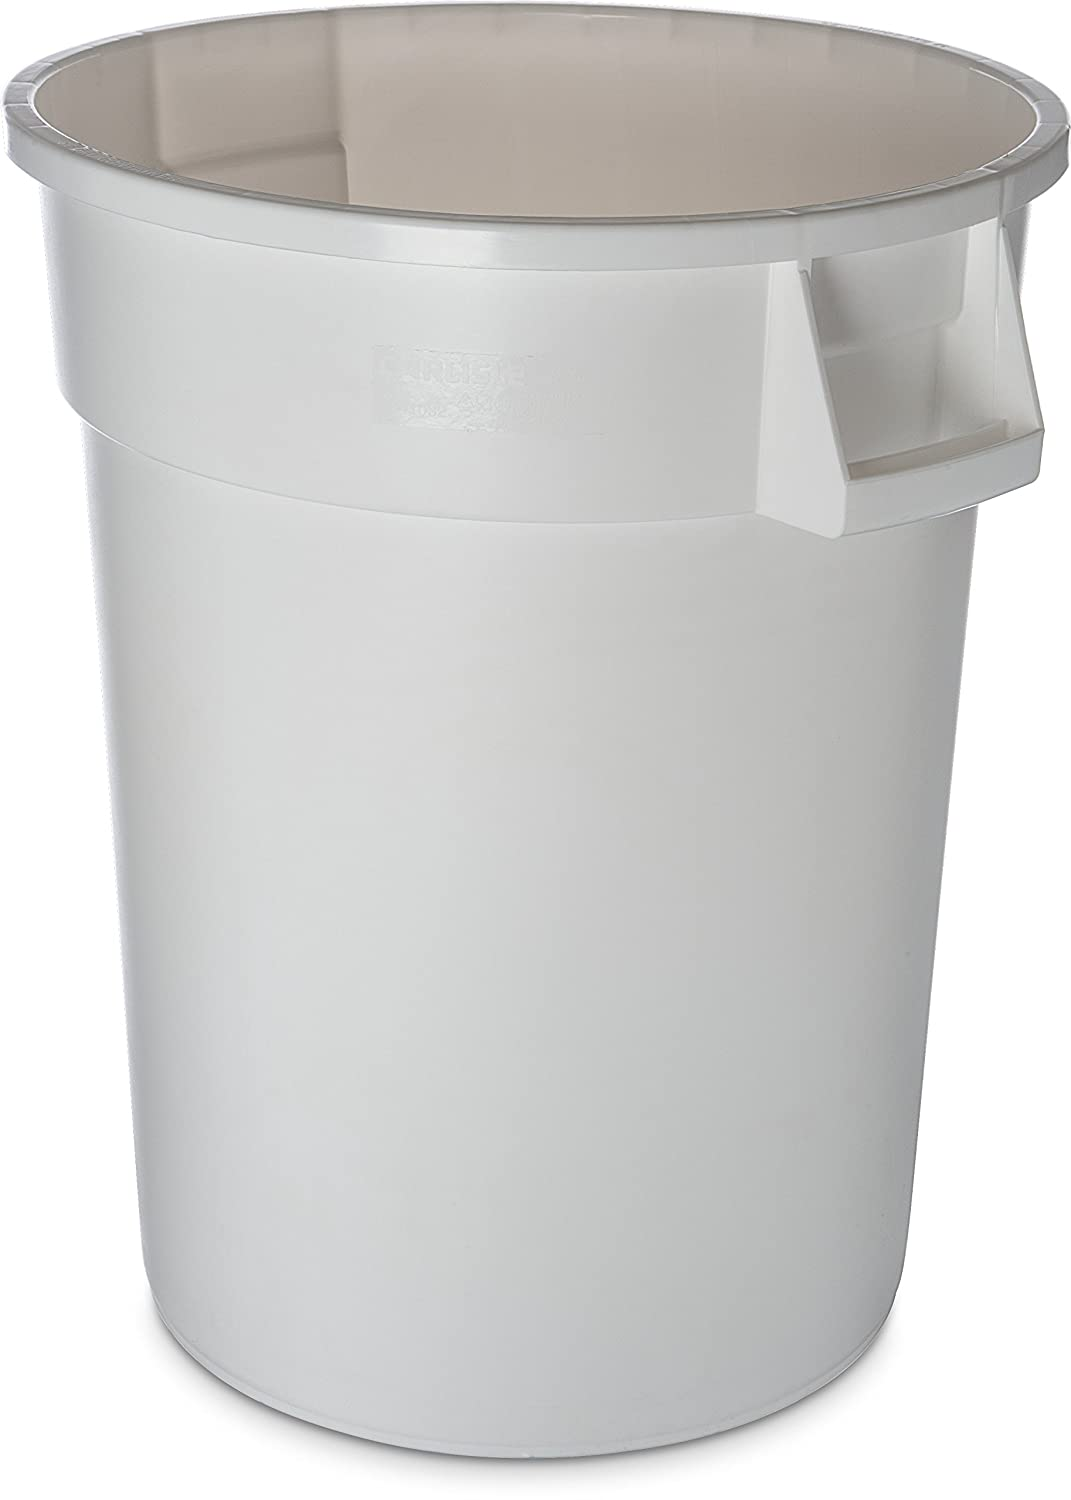 Carlisle 34103202 Bronco Round Waste Container Only, 32 Gallon, White